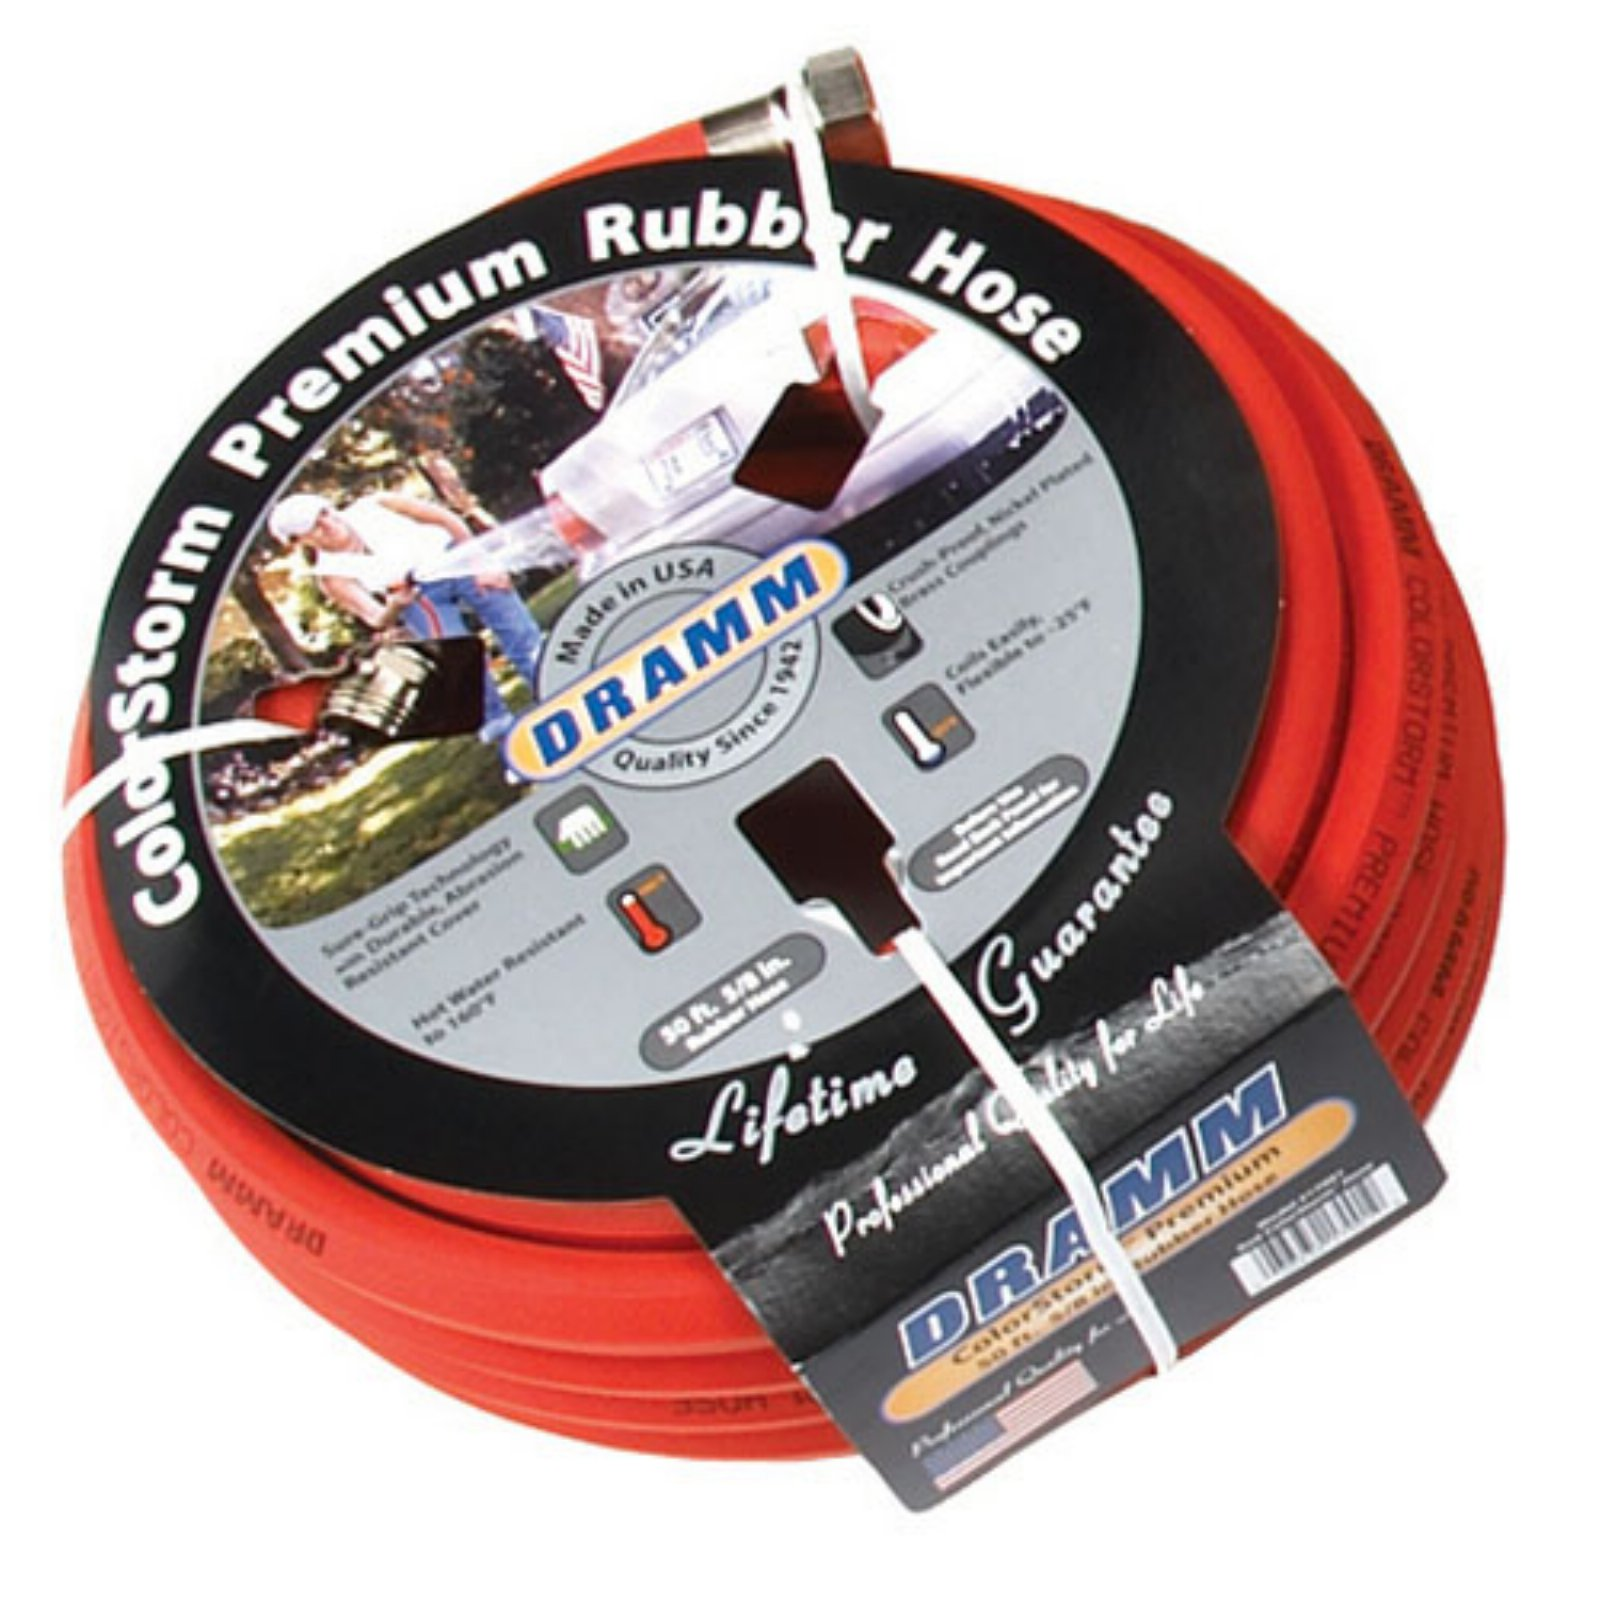 Dramm ColorStorm 5 8 in. Premium Rubber Garden Hose 50 ft. by Dramm Corporation